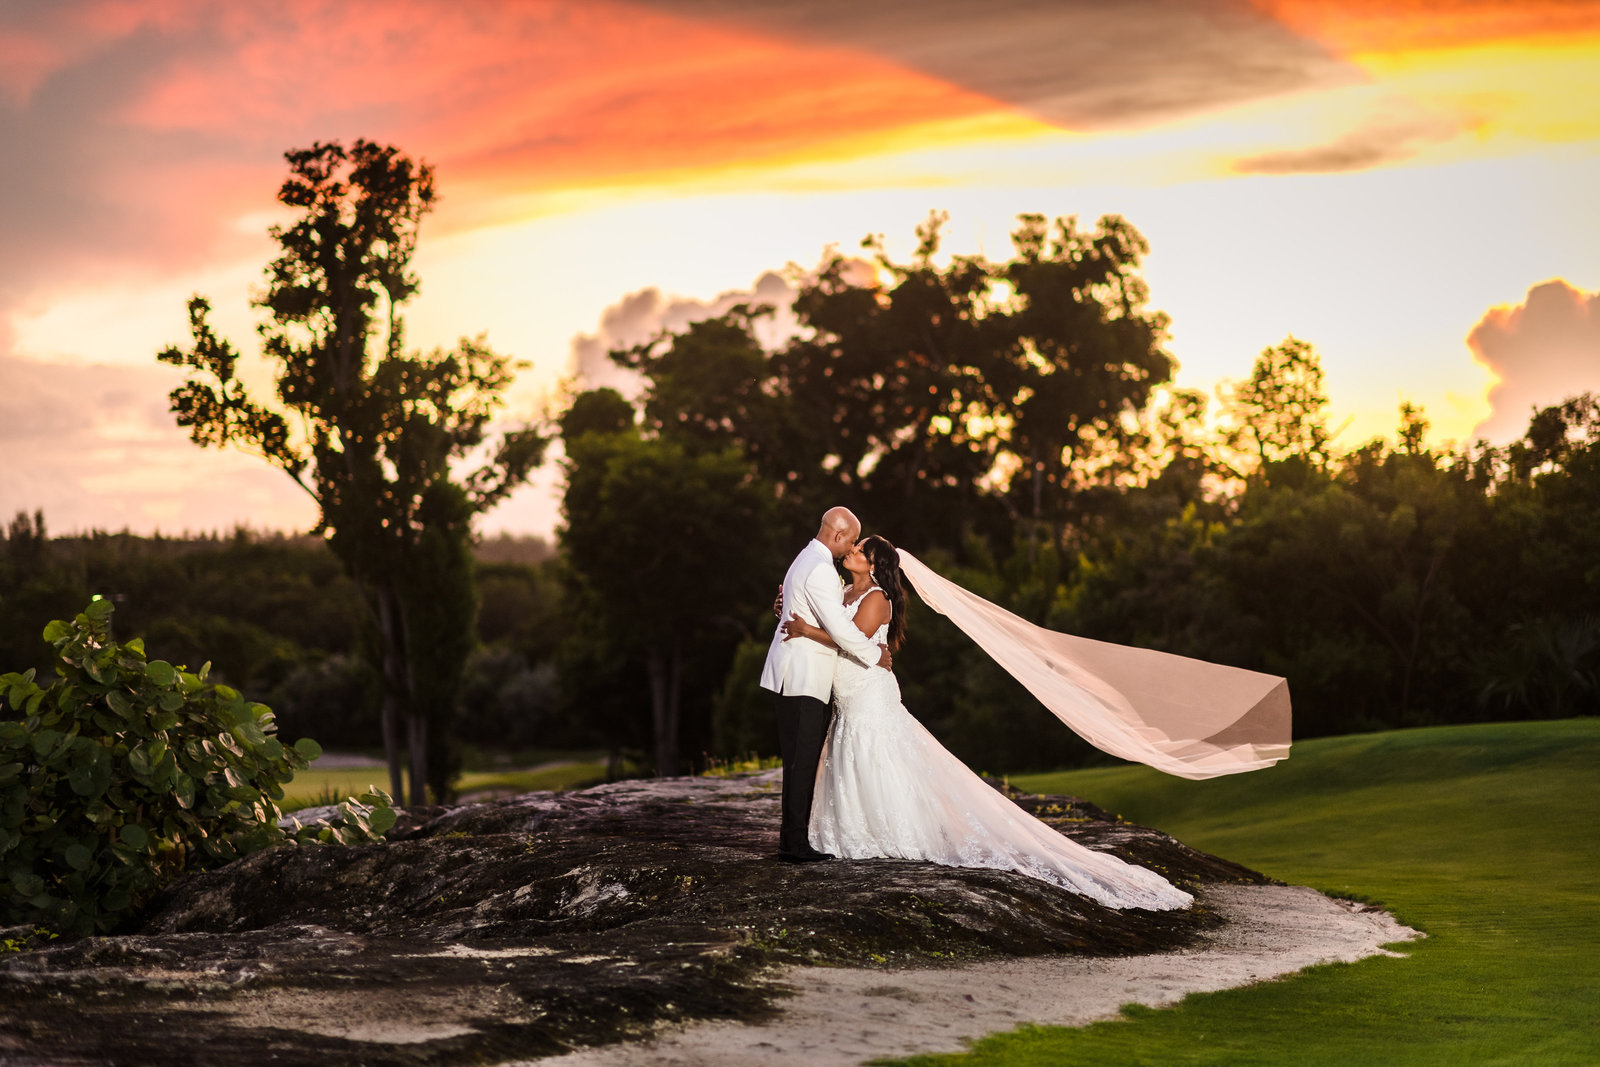 Bride with veil kissing grrom at sunset in the bahamas at Royal blue golf course